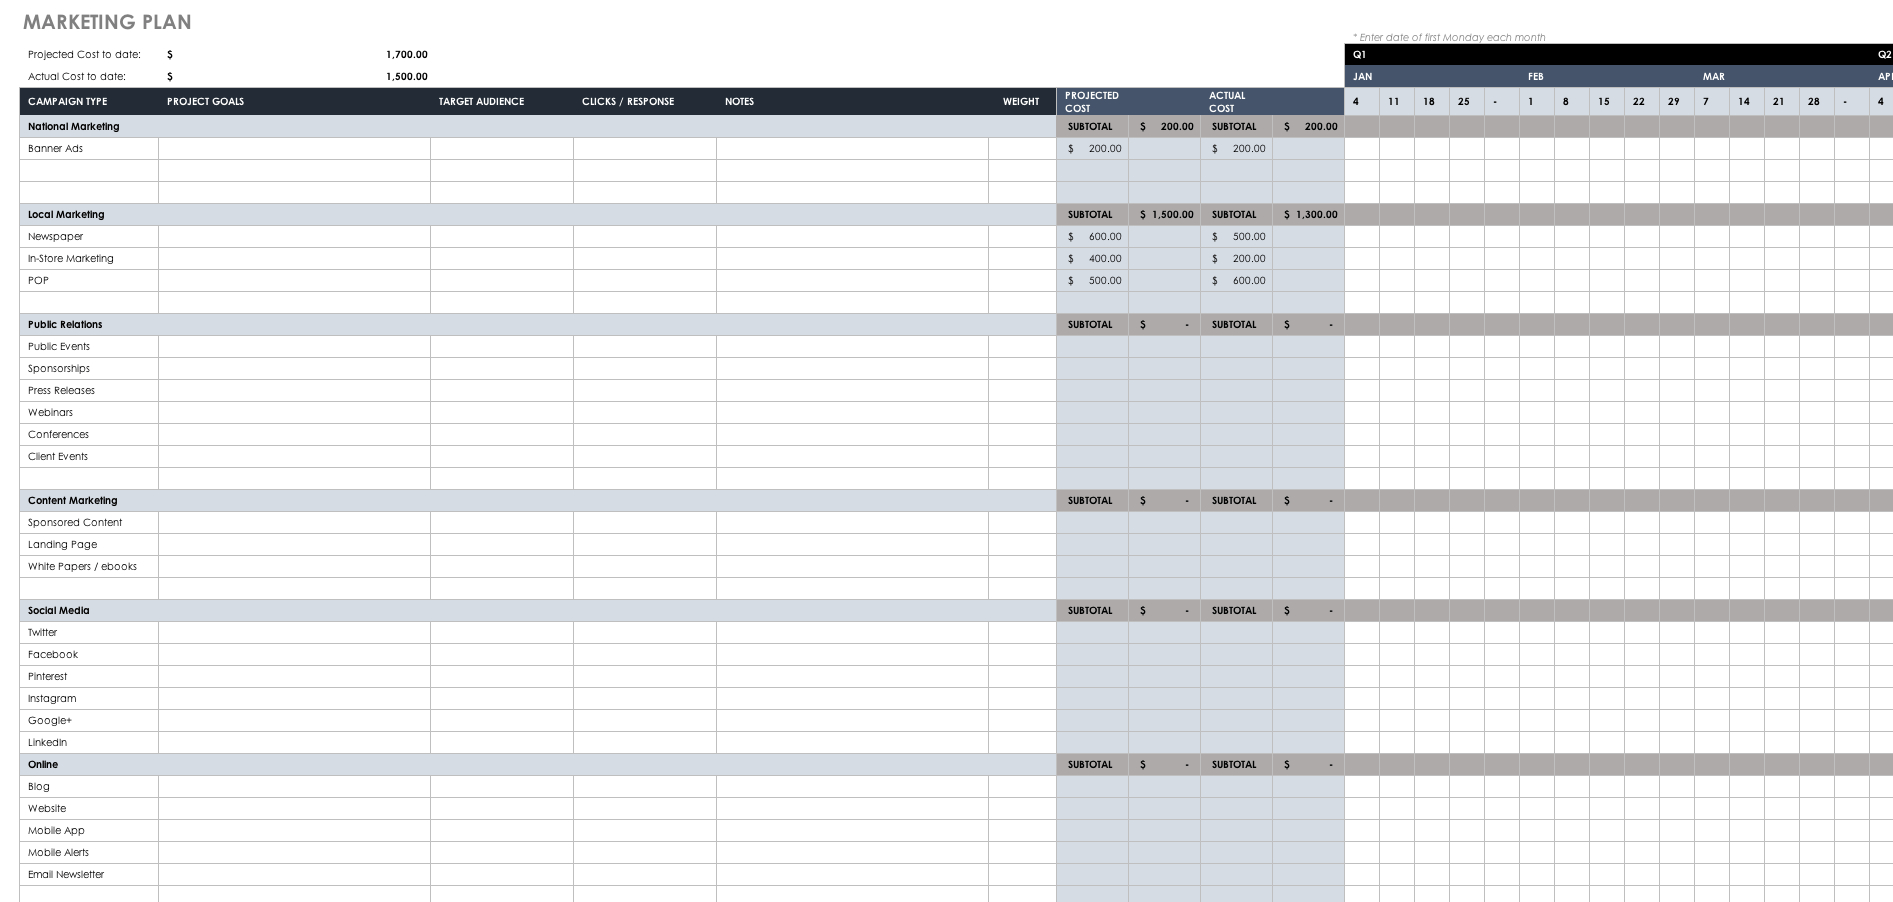 Free Startup Plan Budget  Cost Templates  Smartsheet Within Financial Plan Template For Startup Business